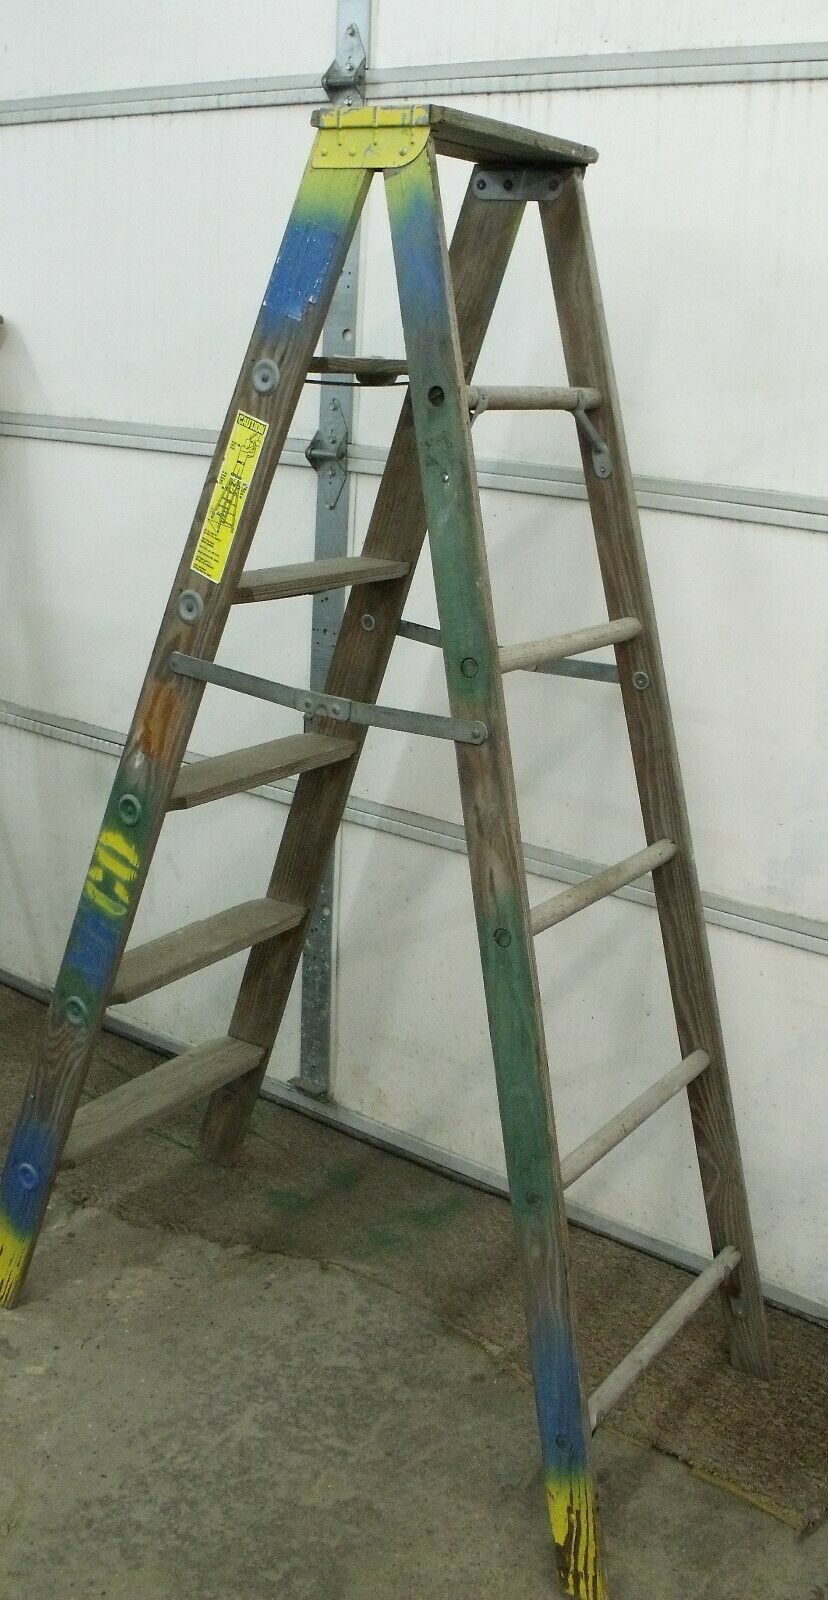 Holland Mi Usa 6 Ft Wood A Frame Step Ladder Const Home Retail Decor Rated250 Ladder Deco Blanket Ladder Decor Rustic Blanket Ladder Wooden Blanket Ladder